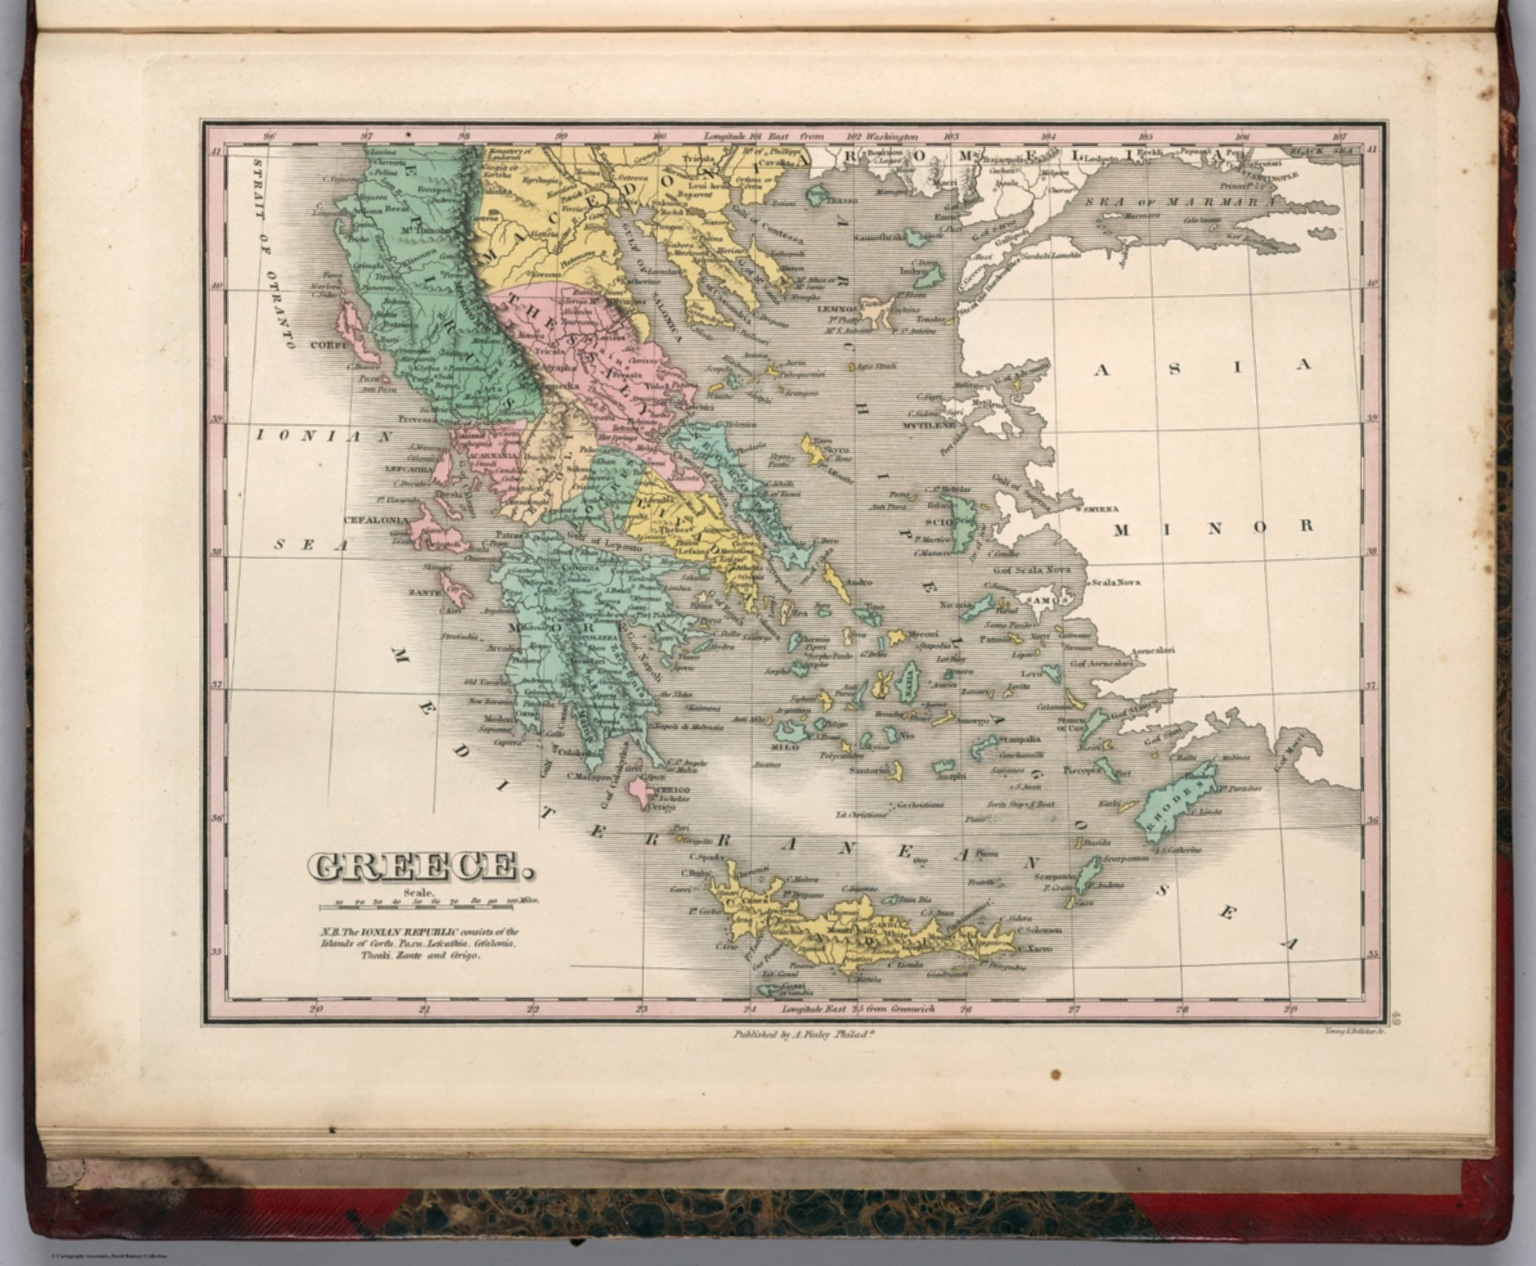 Greece david rumsey historical map collection greece gumiabroncs Choice Image